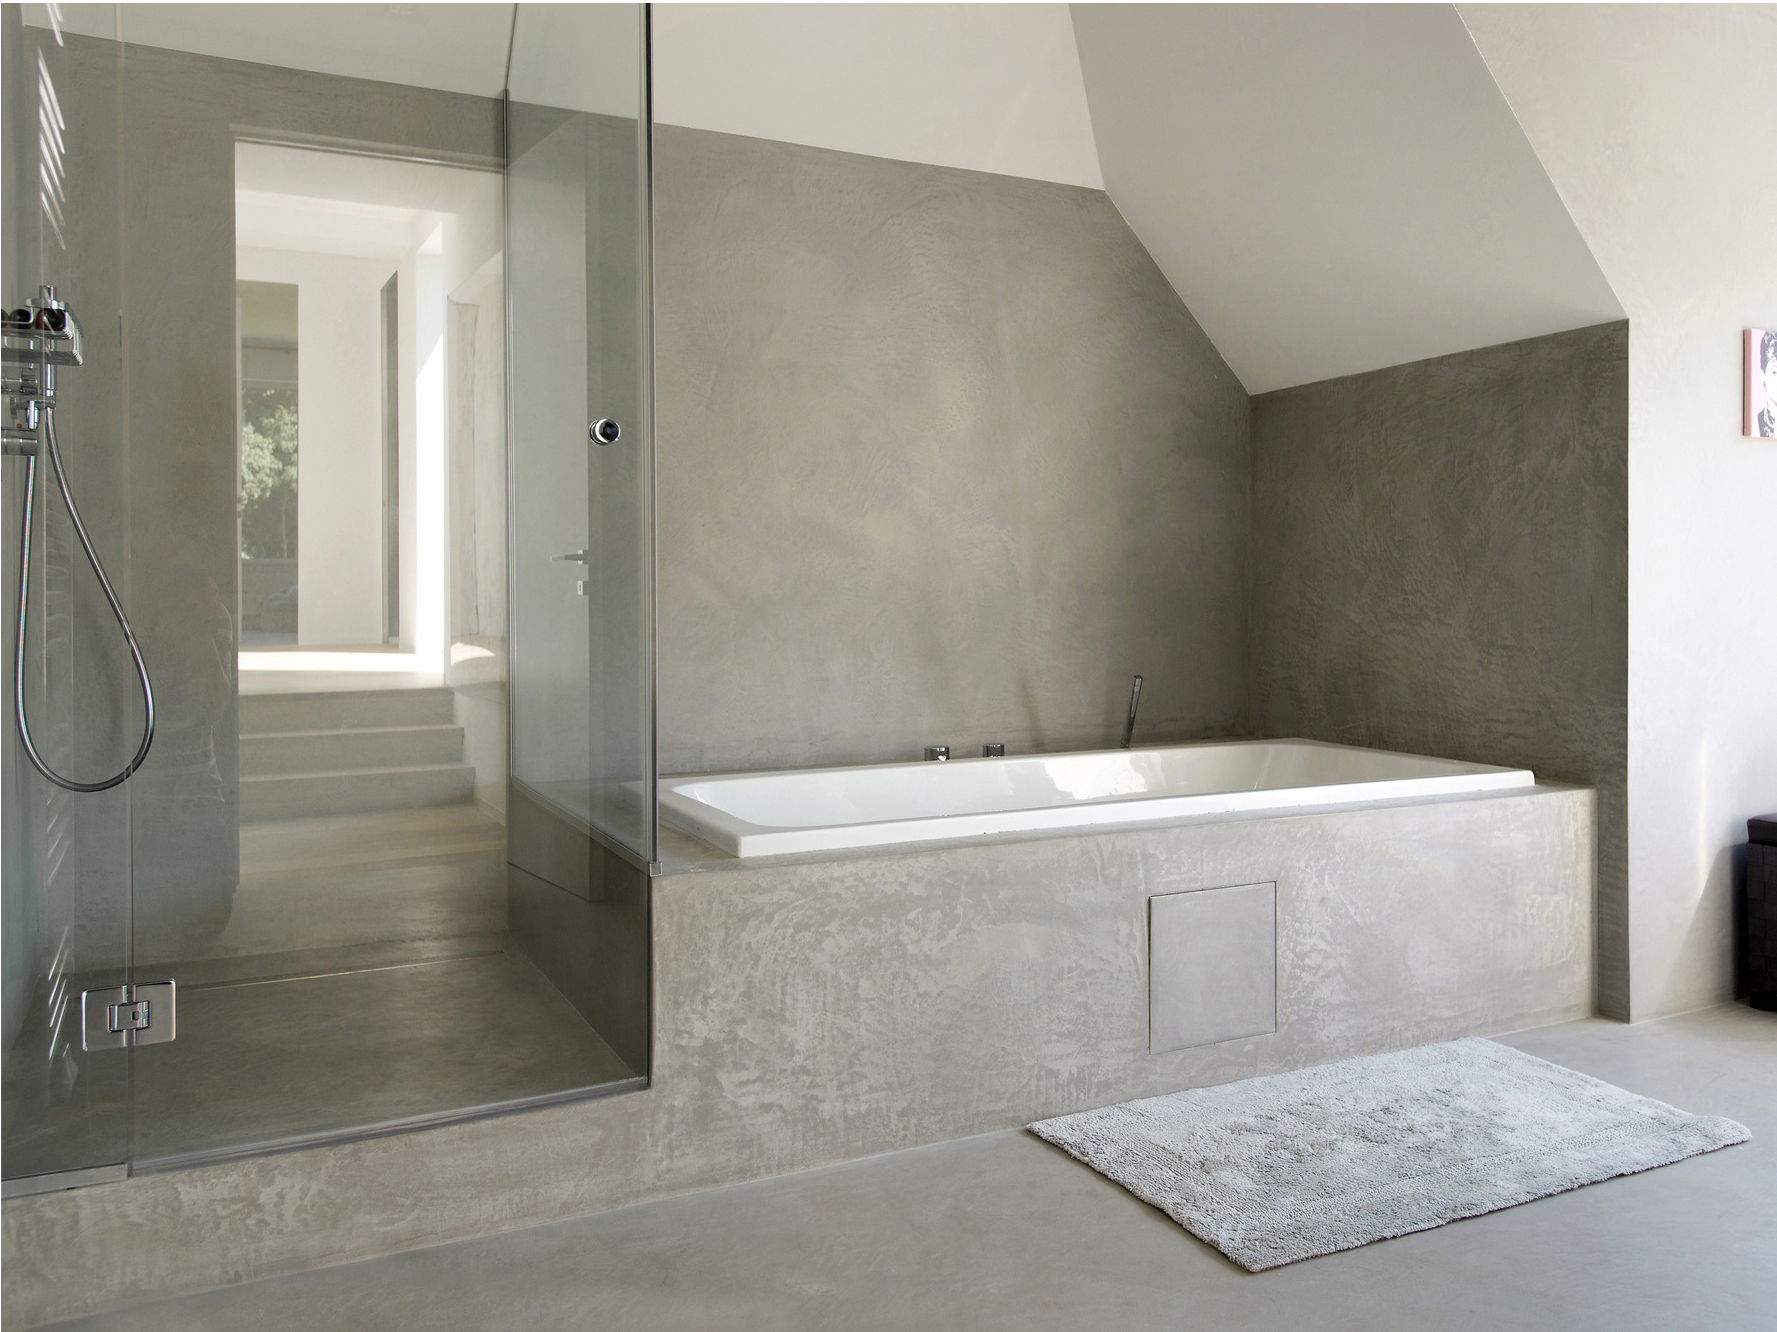 Mortex wall floor tiles mortex collection by beal for Tadelakt salle de bain